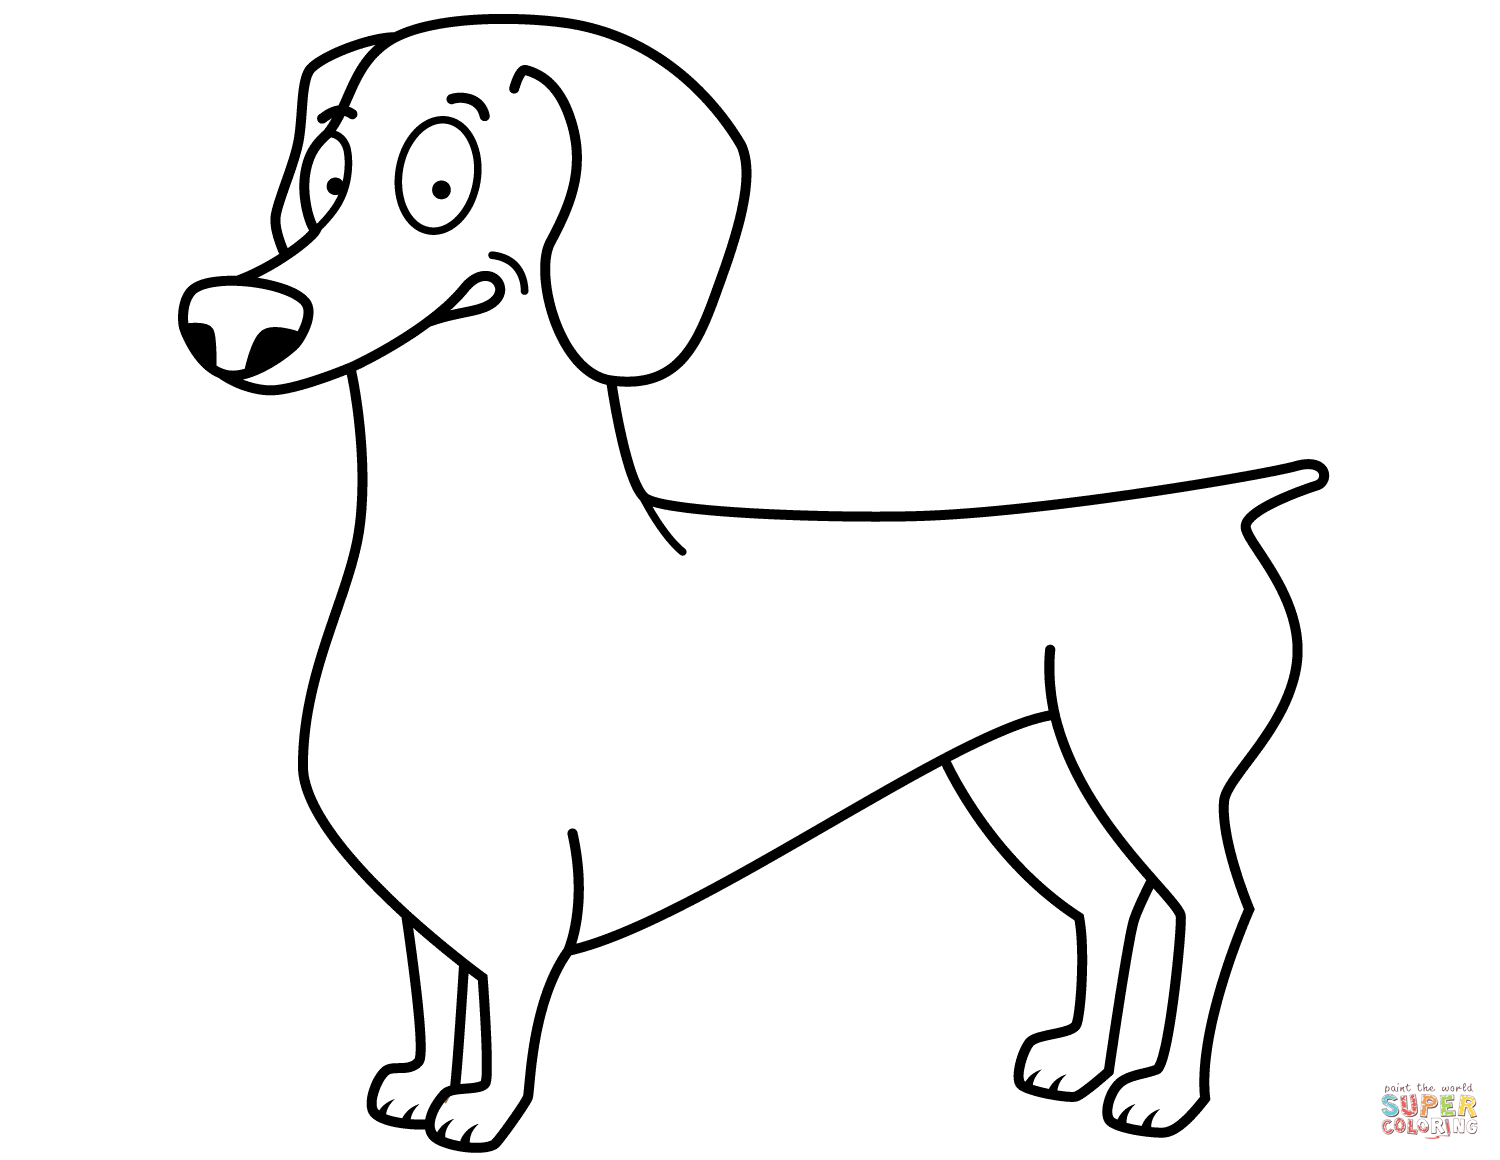 Dachshund Coloring Pages